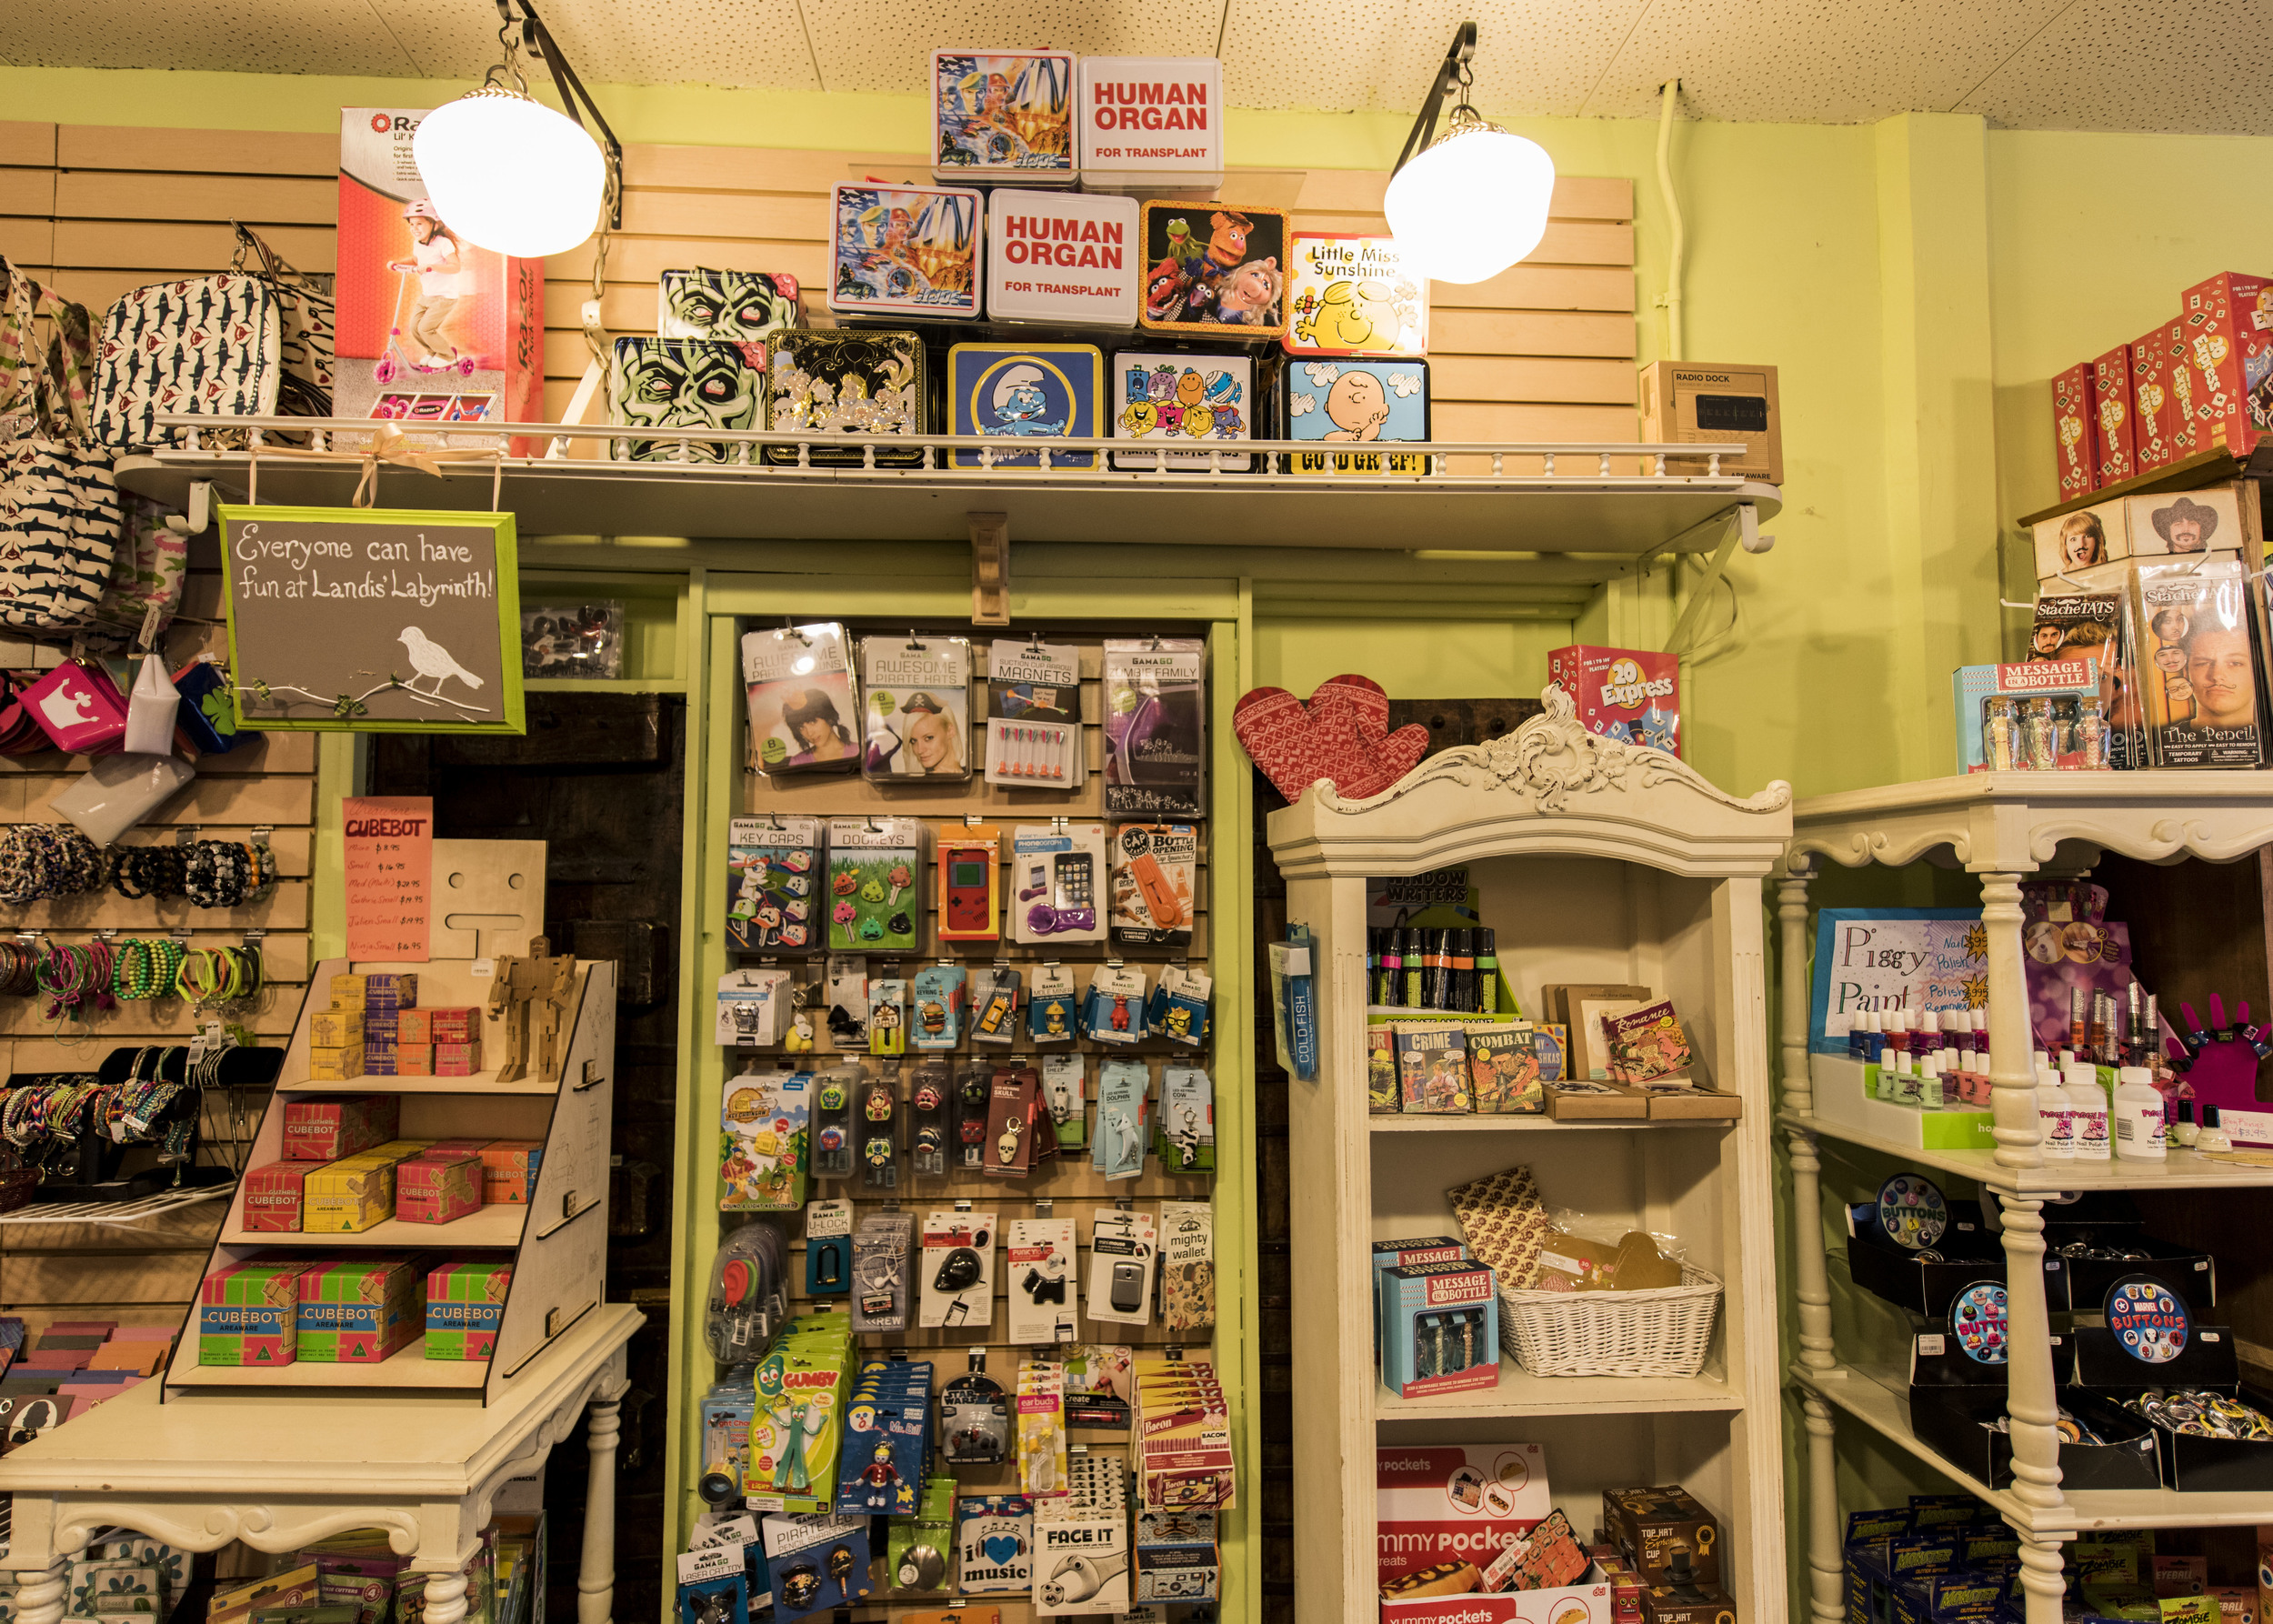 Landis' Labyrinth Store Pictures 013.jpg